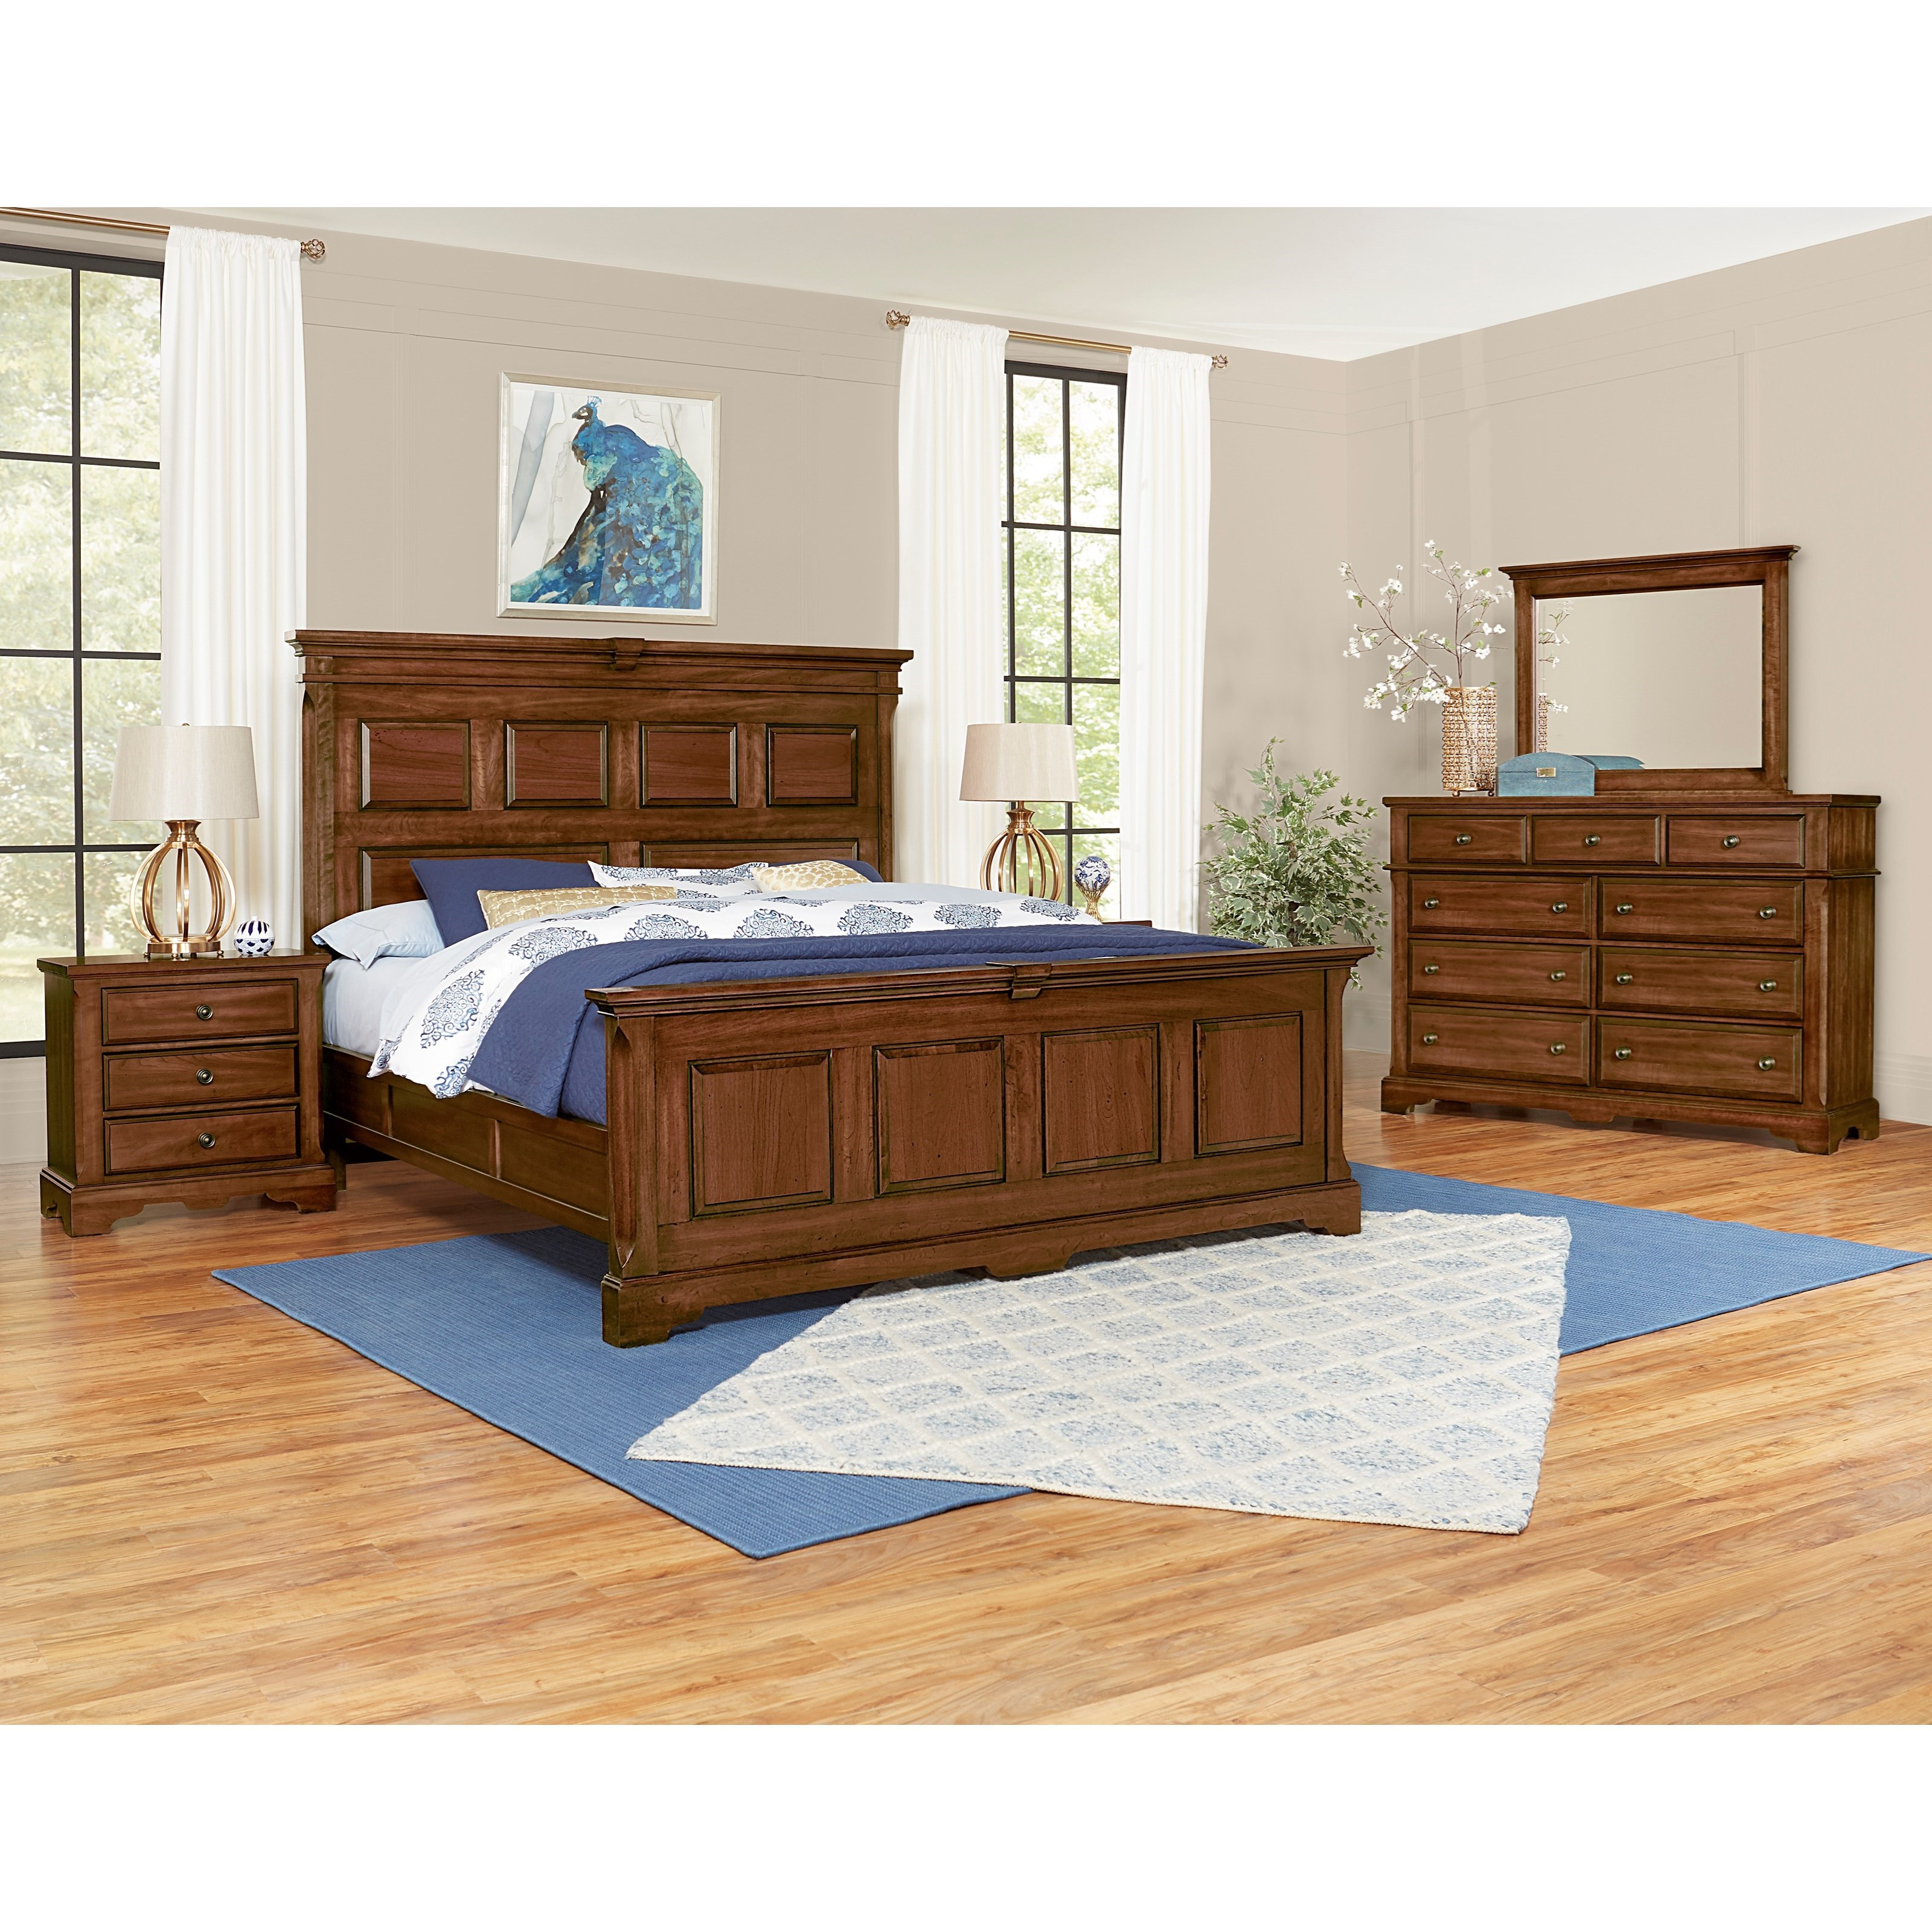 Heritage Queen Bedroom Group by Artisan & Post at Suburban Furniture